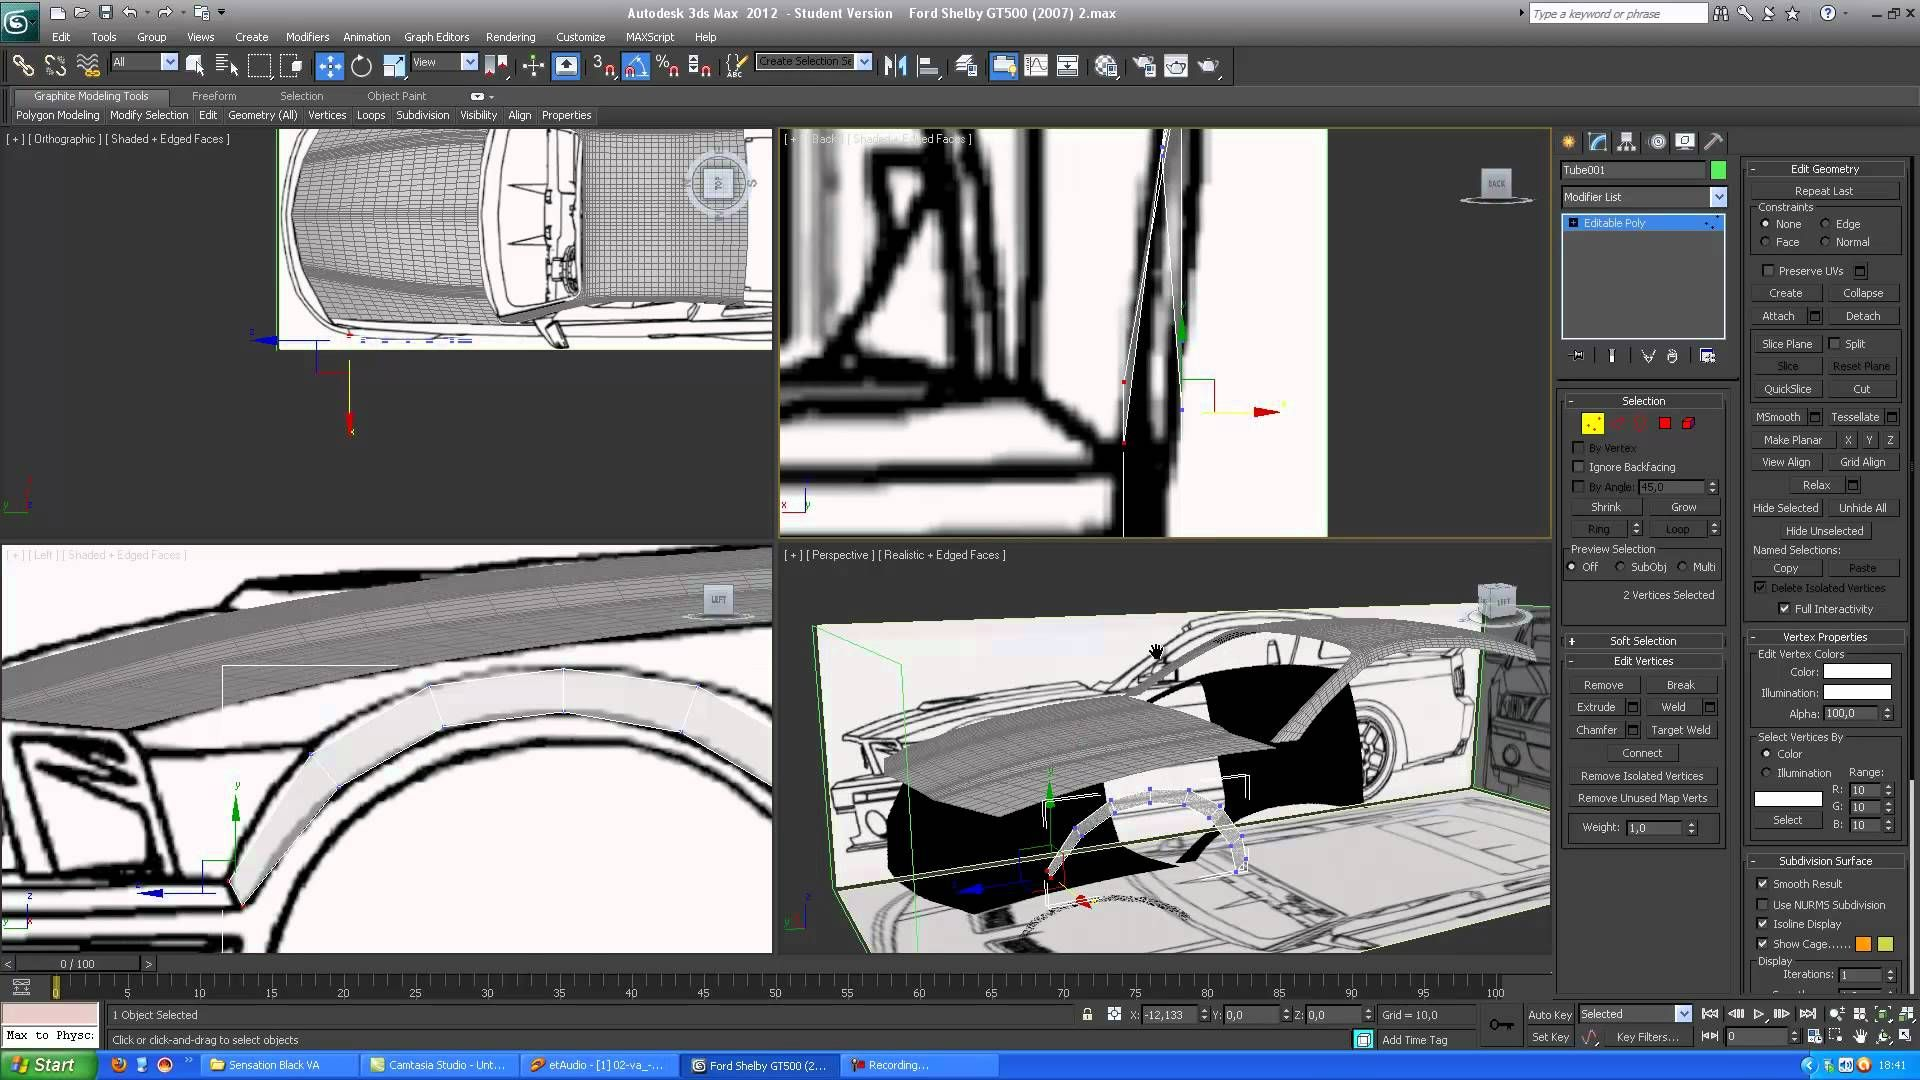 3D MAX - Modelowanie Ford Shelby GT500 (2007) - Part 2